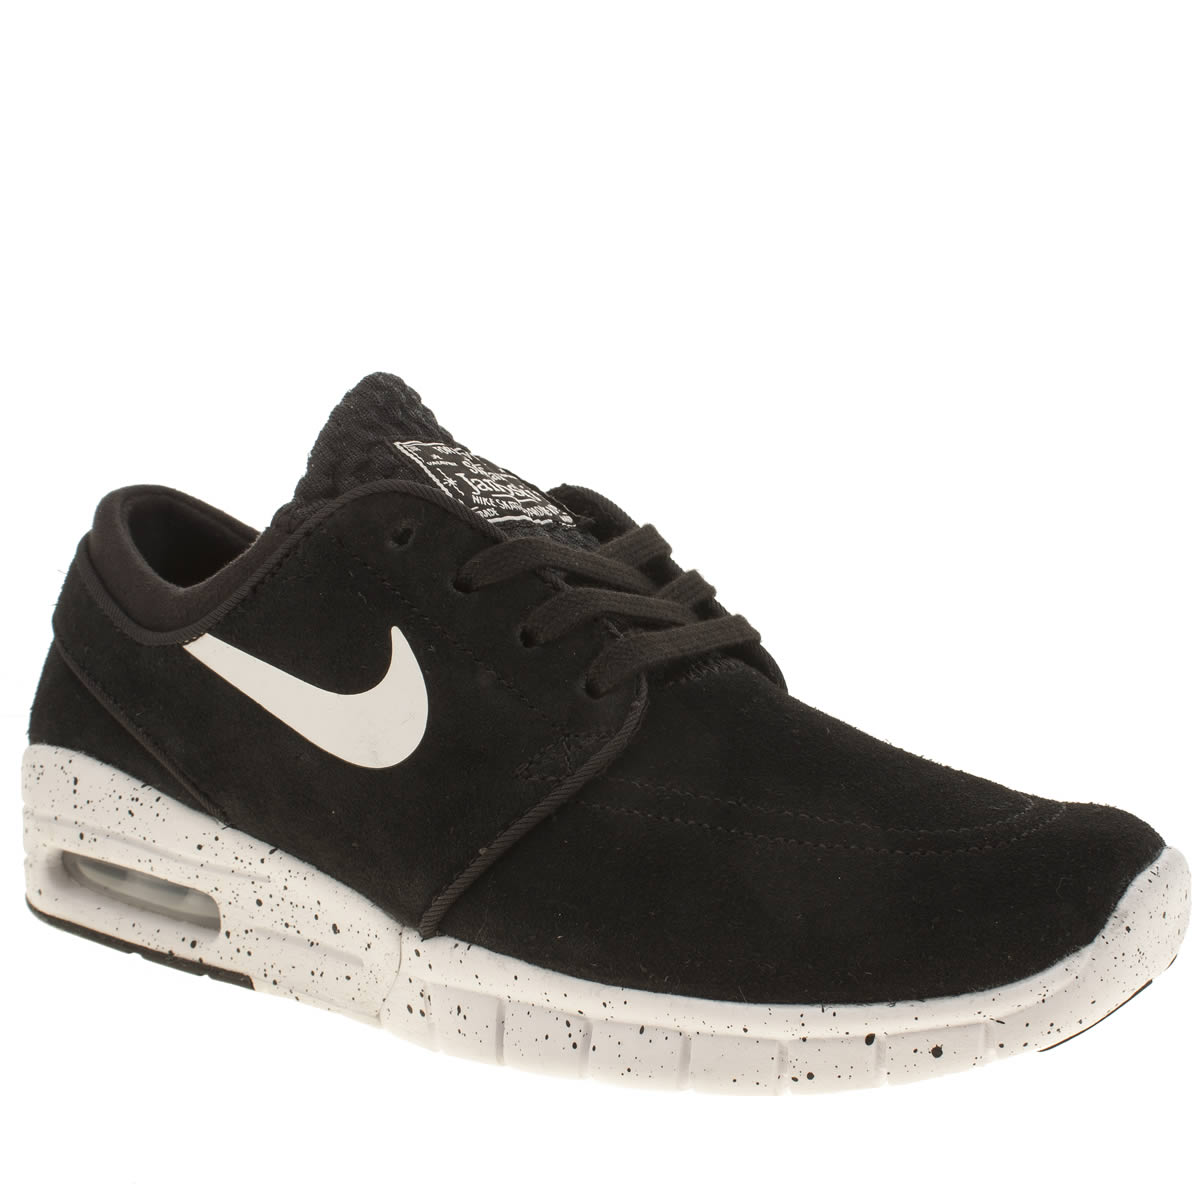 Nike Sb Womens Shoes